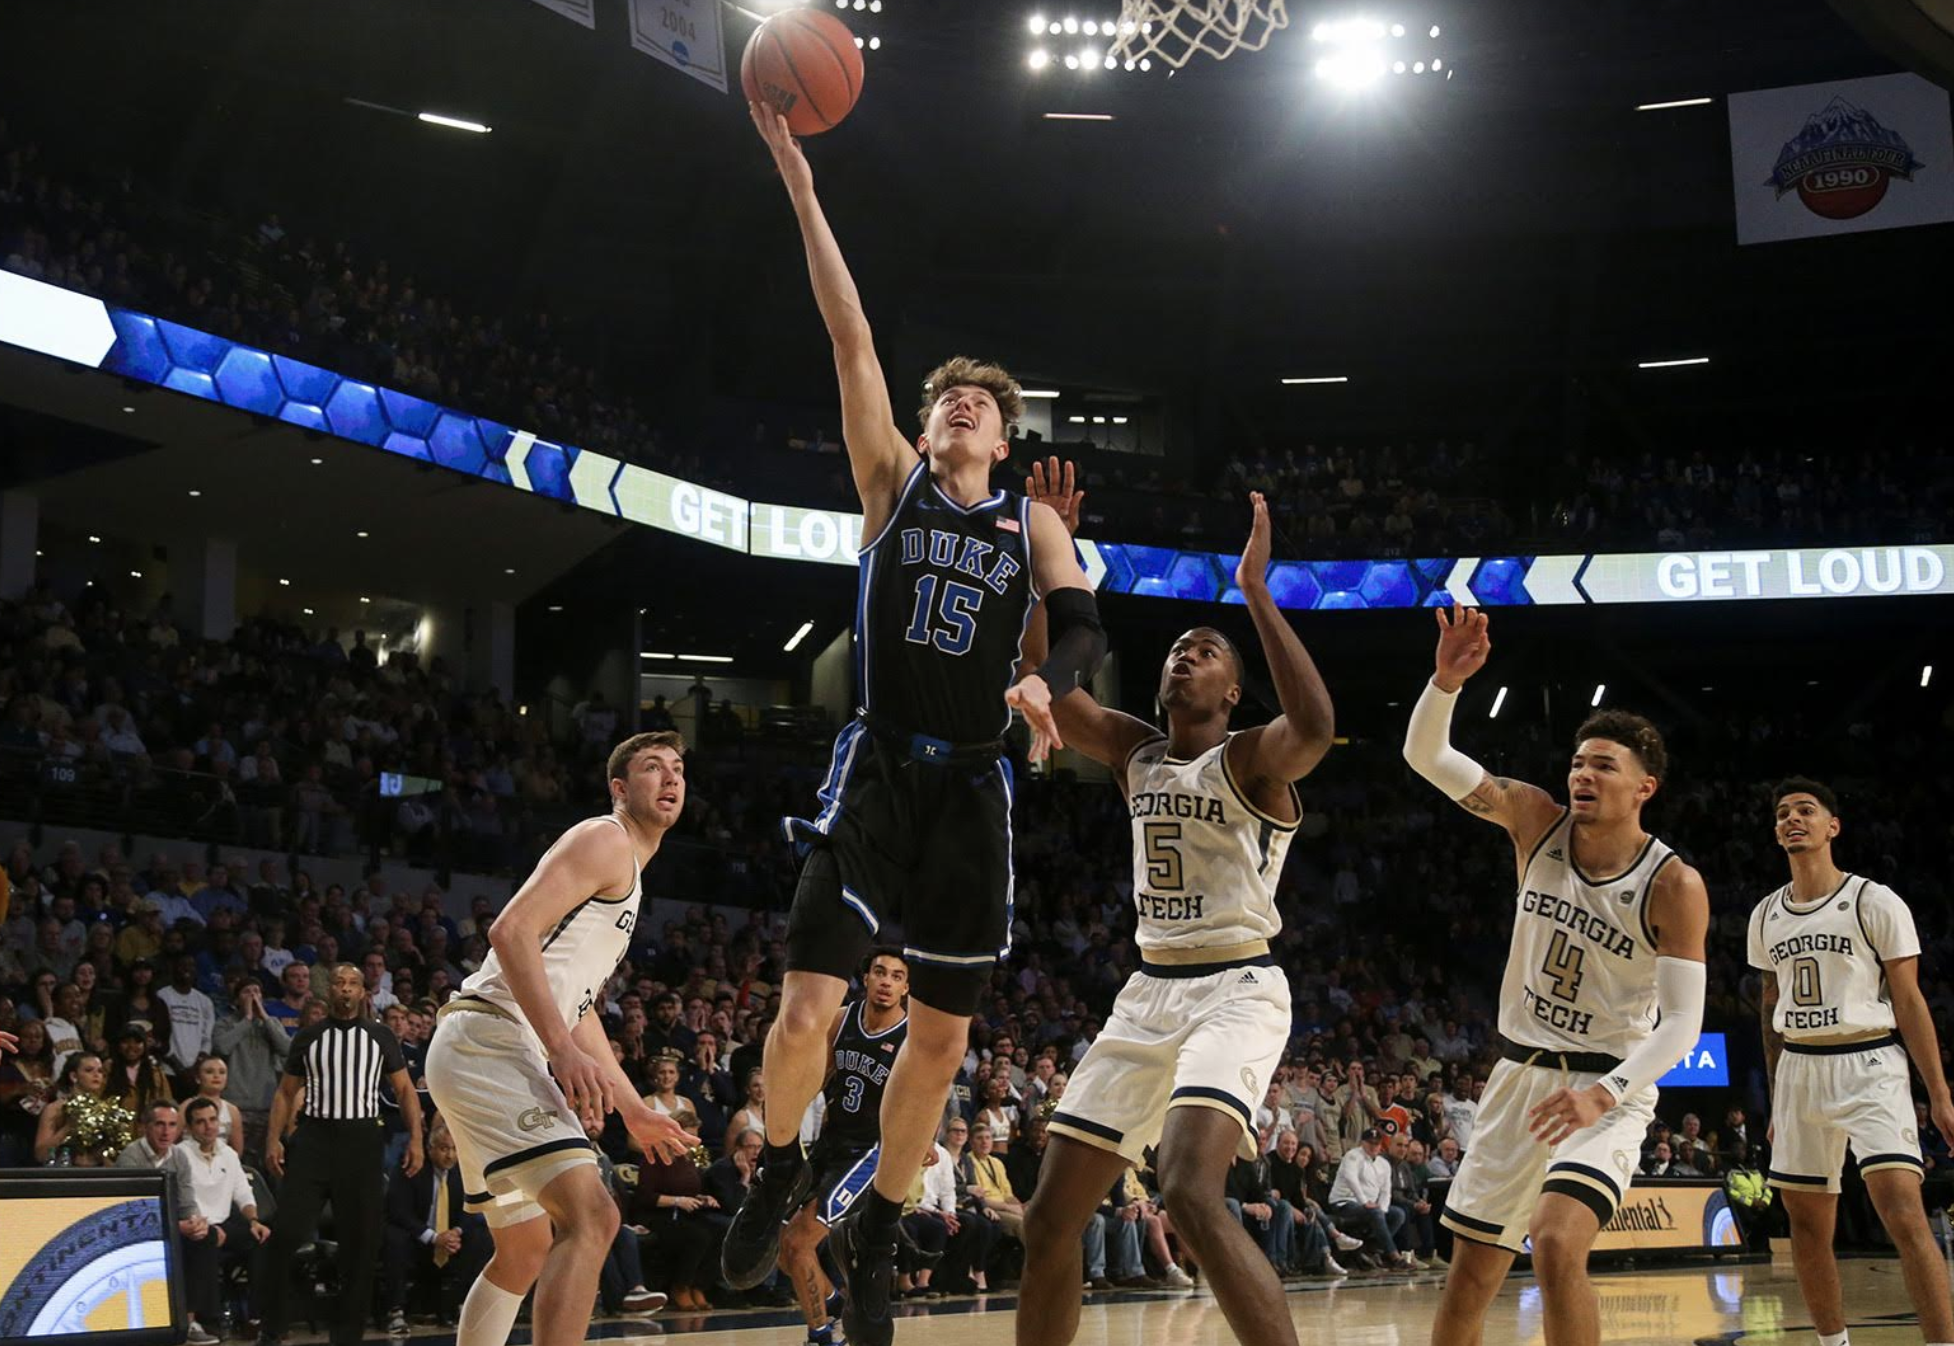 Duke Wins Road Grudge Match at Georgia Tech 73-64; Tre Jones with 16 points, 8 rebounds, 7 assists; Cassius Stanley with 14 Points